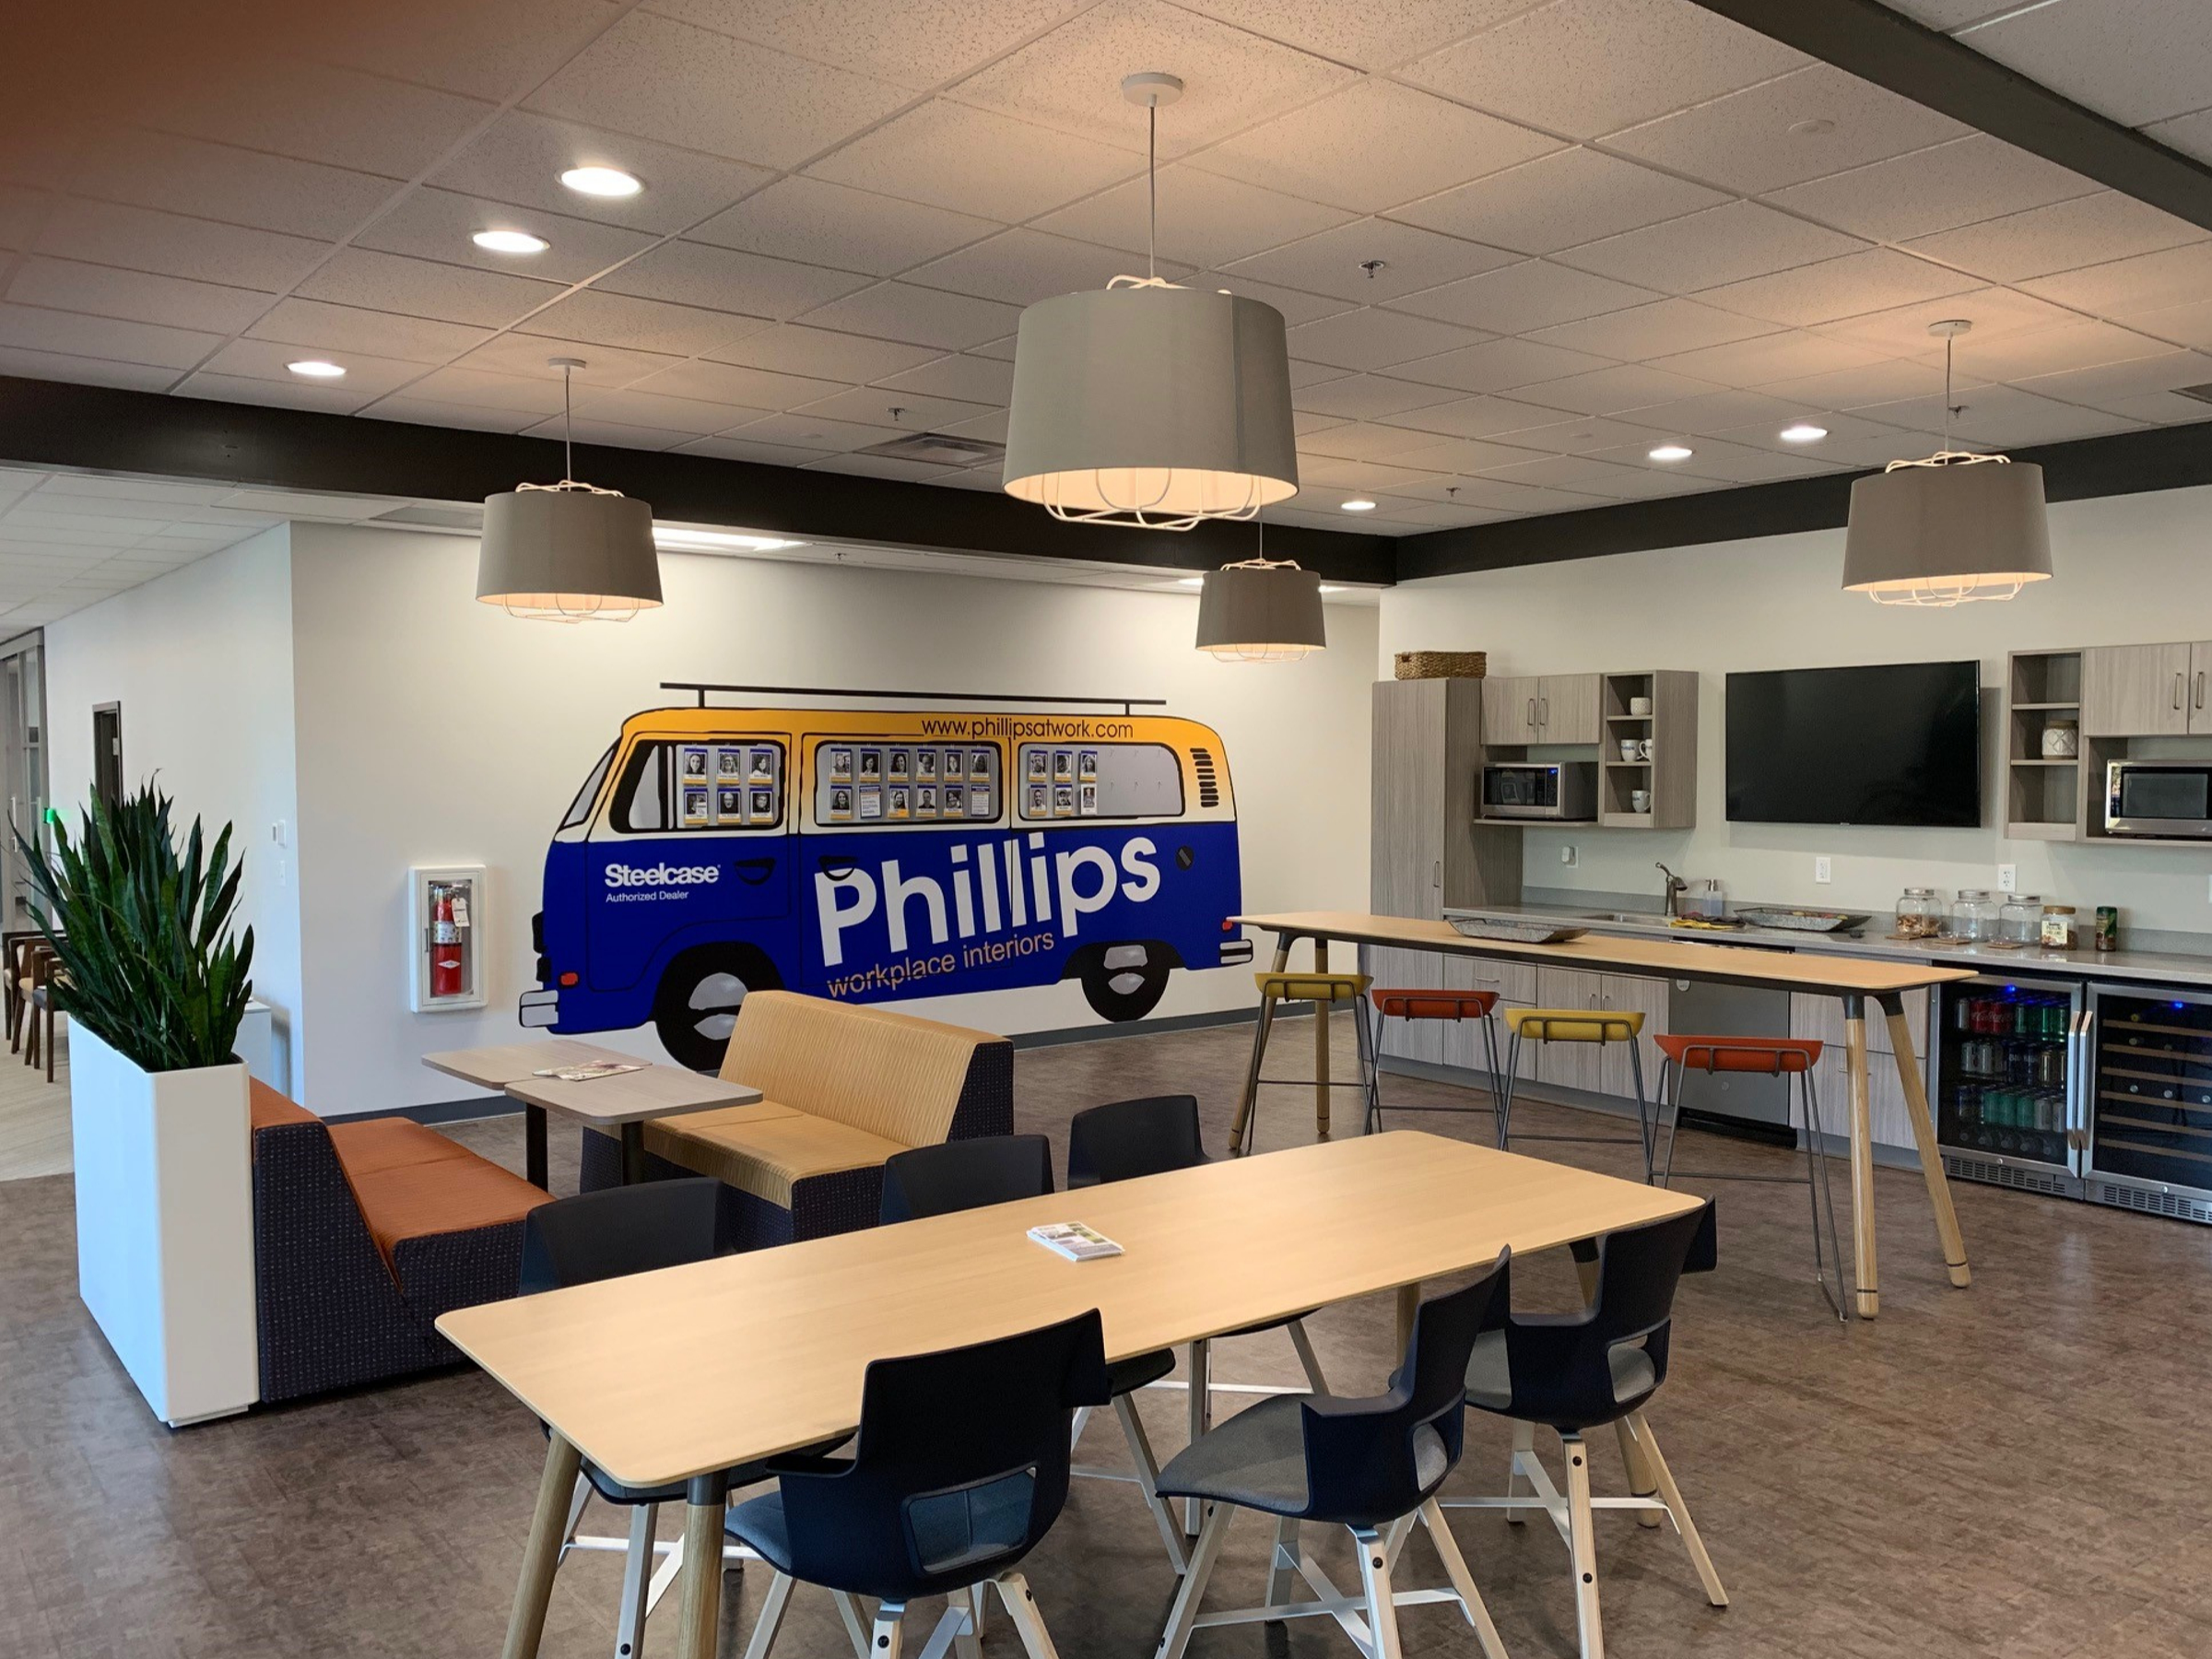 Phillips Workplace Interiors located in Harrisburg, PA